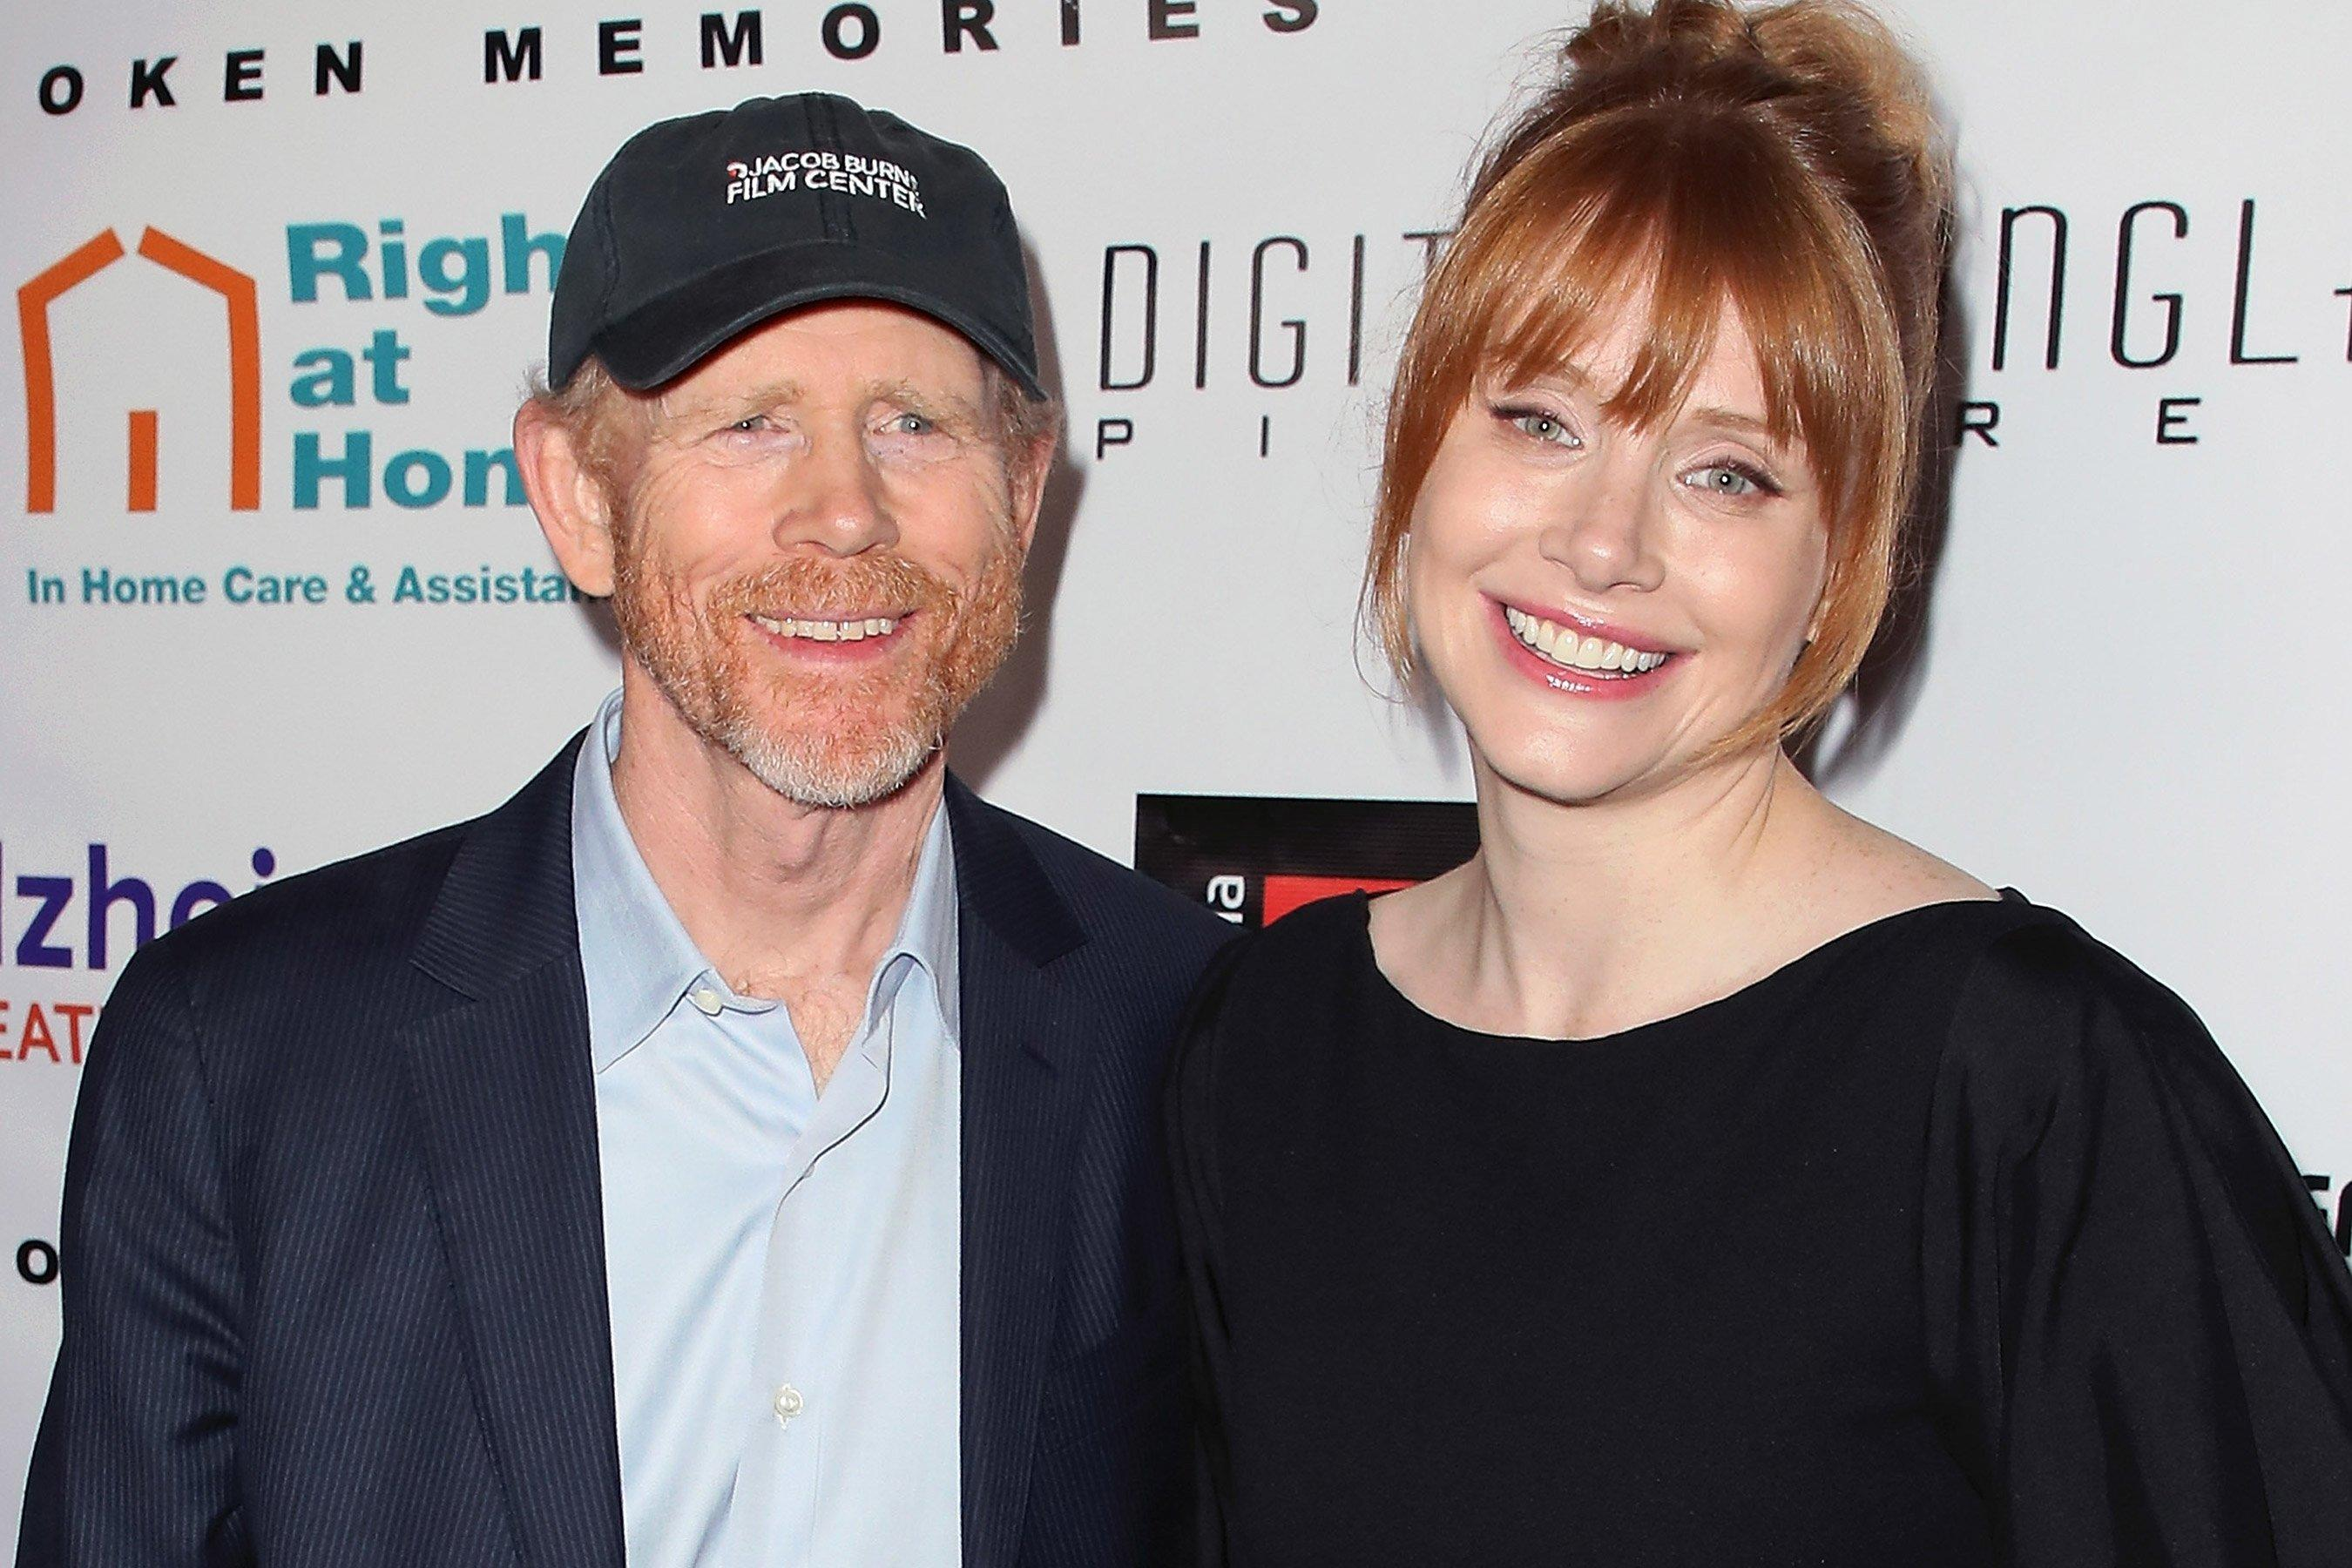 Bryce Dallas Howard's Dads documentary about father Ron Howard to